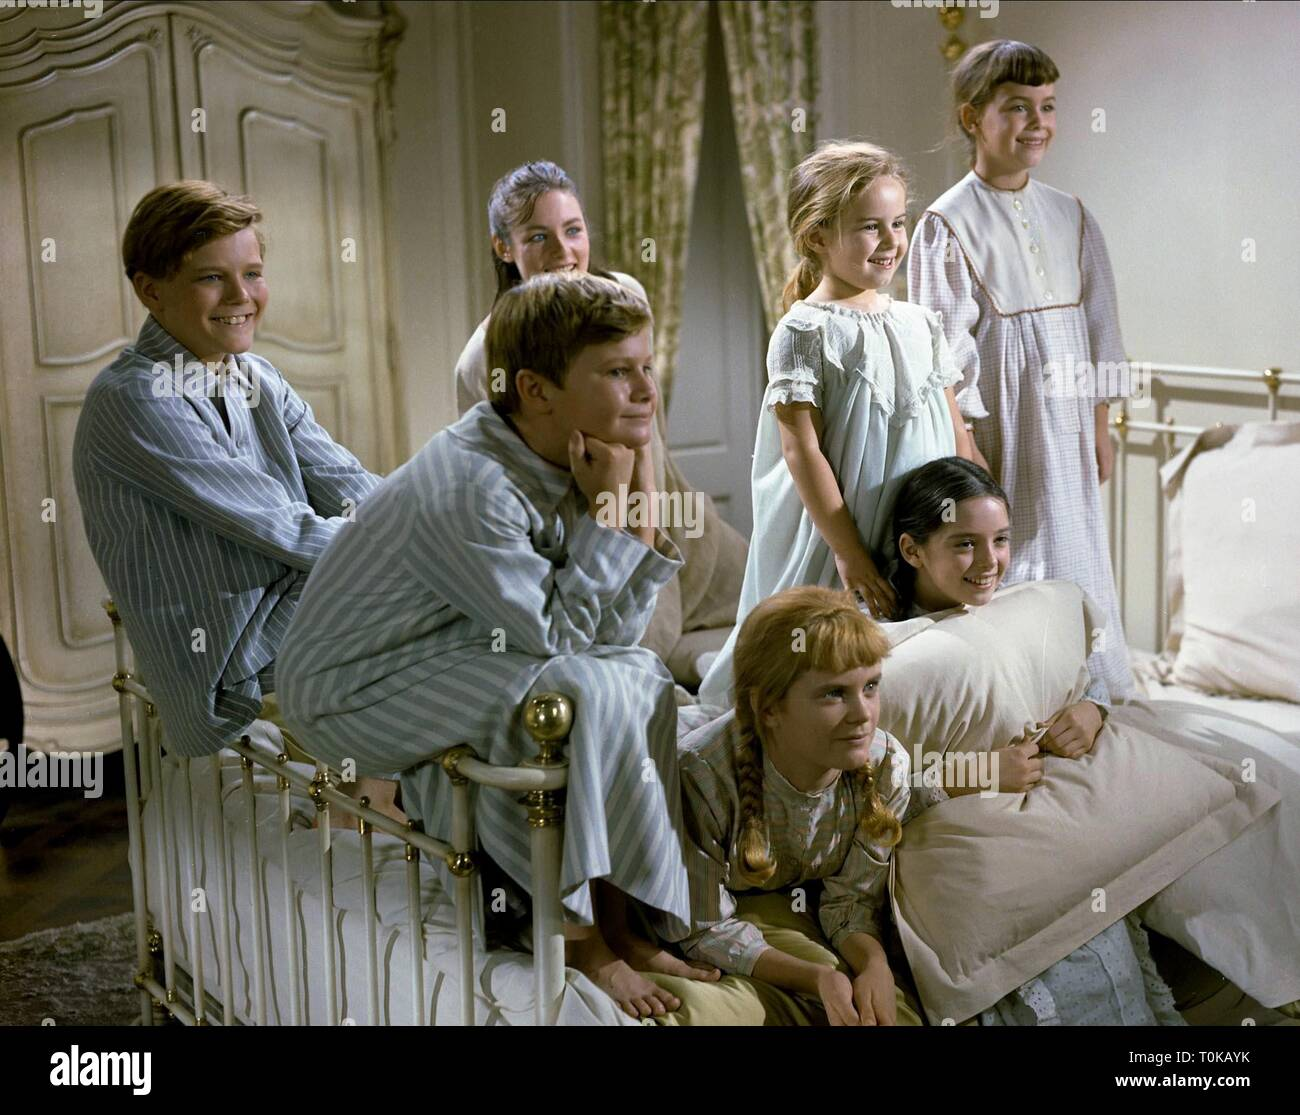 THE SOUND OF MUSIC, CHARMIAN CARR, ANGELA CARTWRIGHT, DUANE CHASE, NICHOLAS HAMMOND, KYM KARATH, HEATHER MENZIES-URICH , DEBBIE TURNER, 1965 - Stock Image